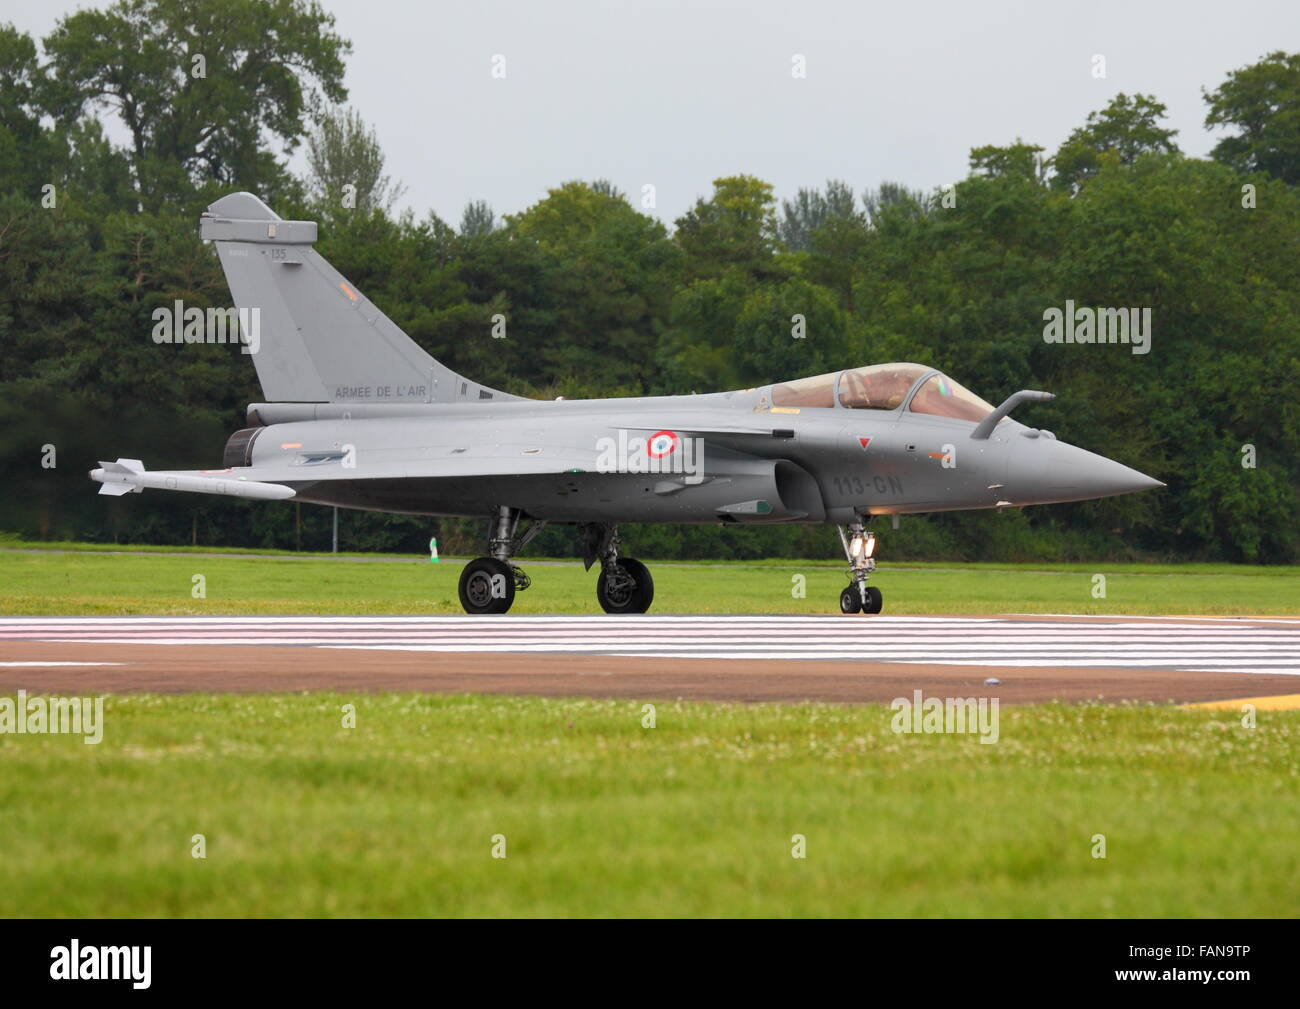 The French Dassault Rafale on the runway at the Royal International Air Tattoo 2012 - Stock Image